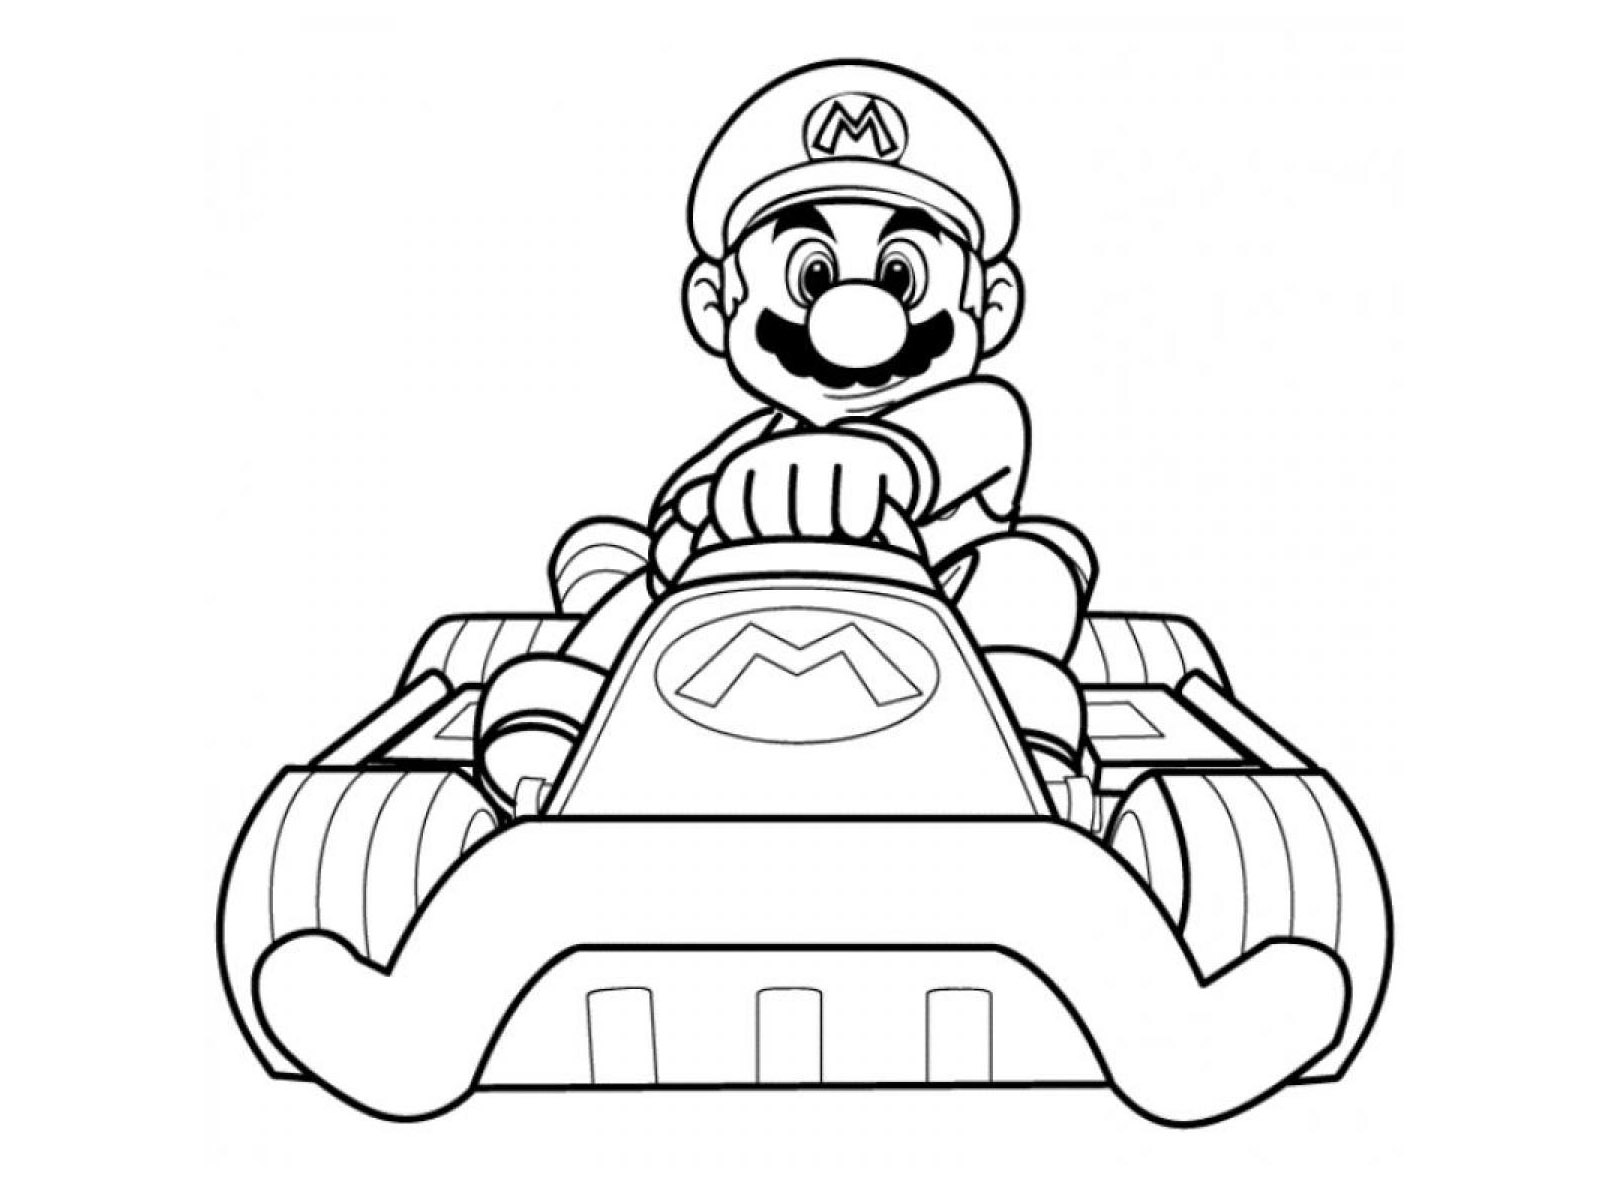 Simple Mario Kart coloring page to print and color for free